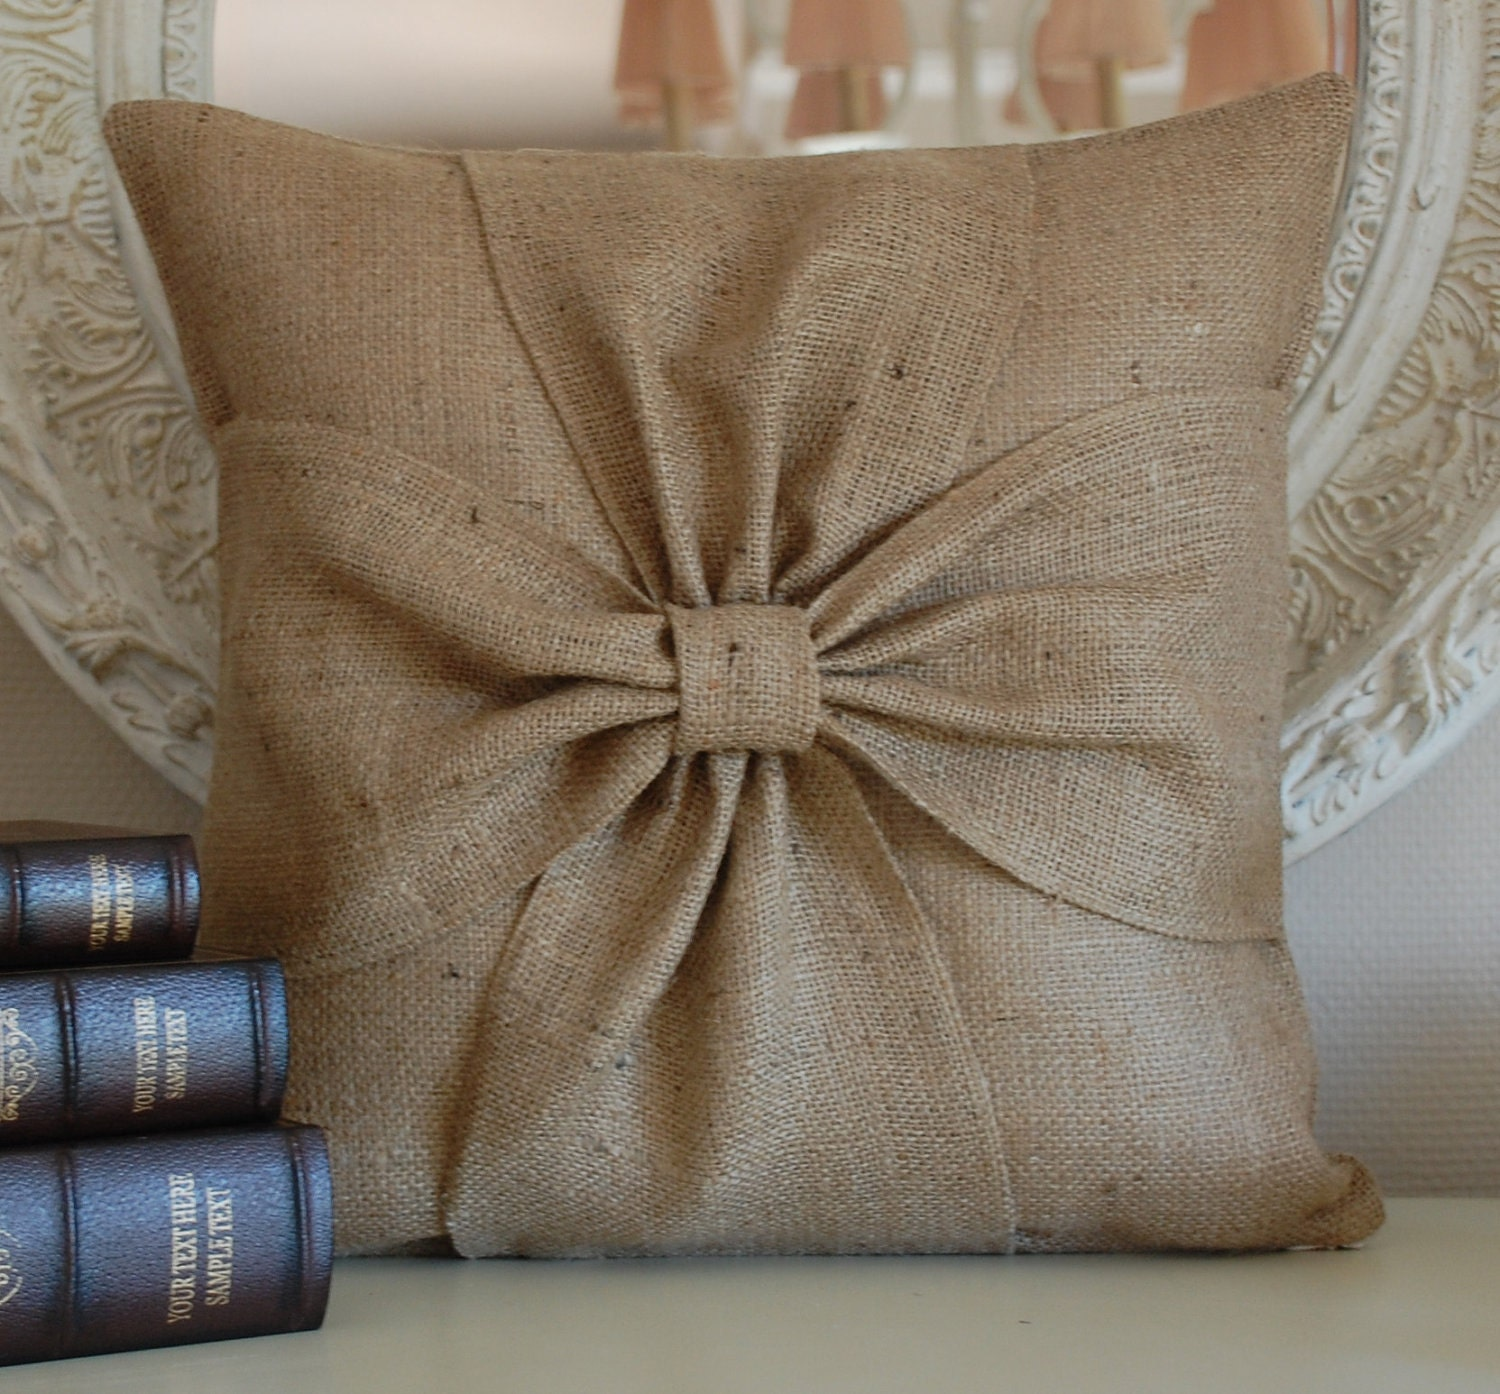 Decorative Pillows Etsy : Burlap bow pillow cover by secdus on Etsy